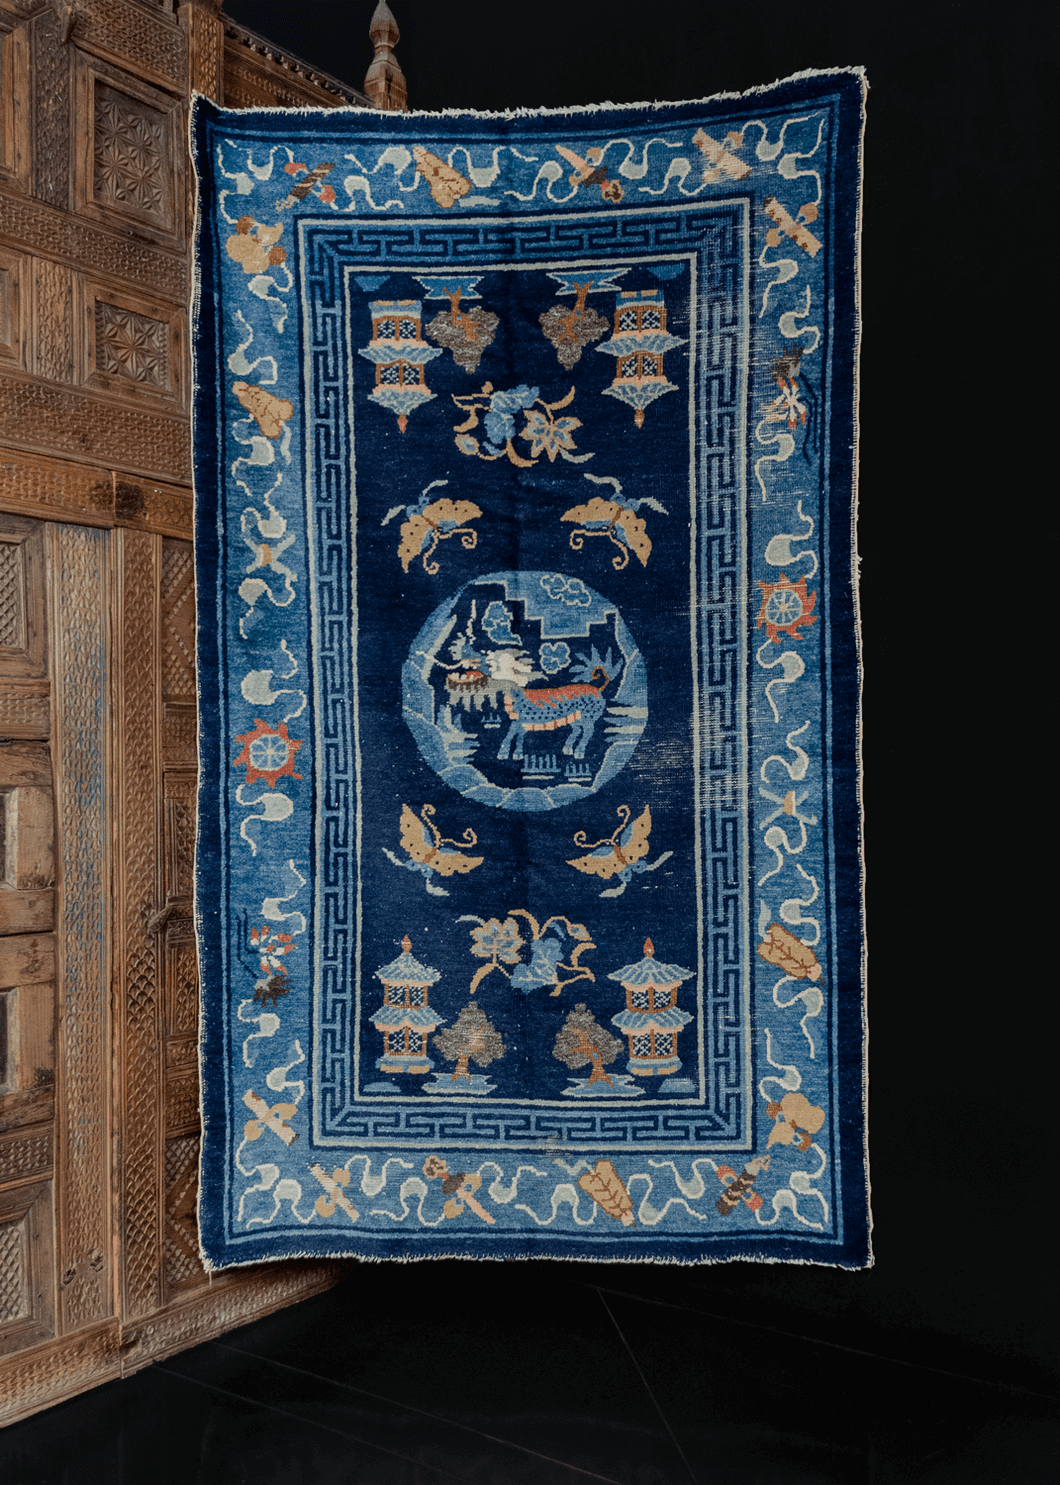 Antique Ninghxia rug handwoven early 20th century in Central China. Central medallion with dragon or foo dog surrounded by butterflies, trees and pagodas at the corners. Primarily blue with earthy yellows, reds, browns and white.